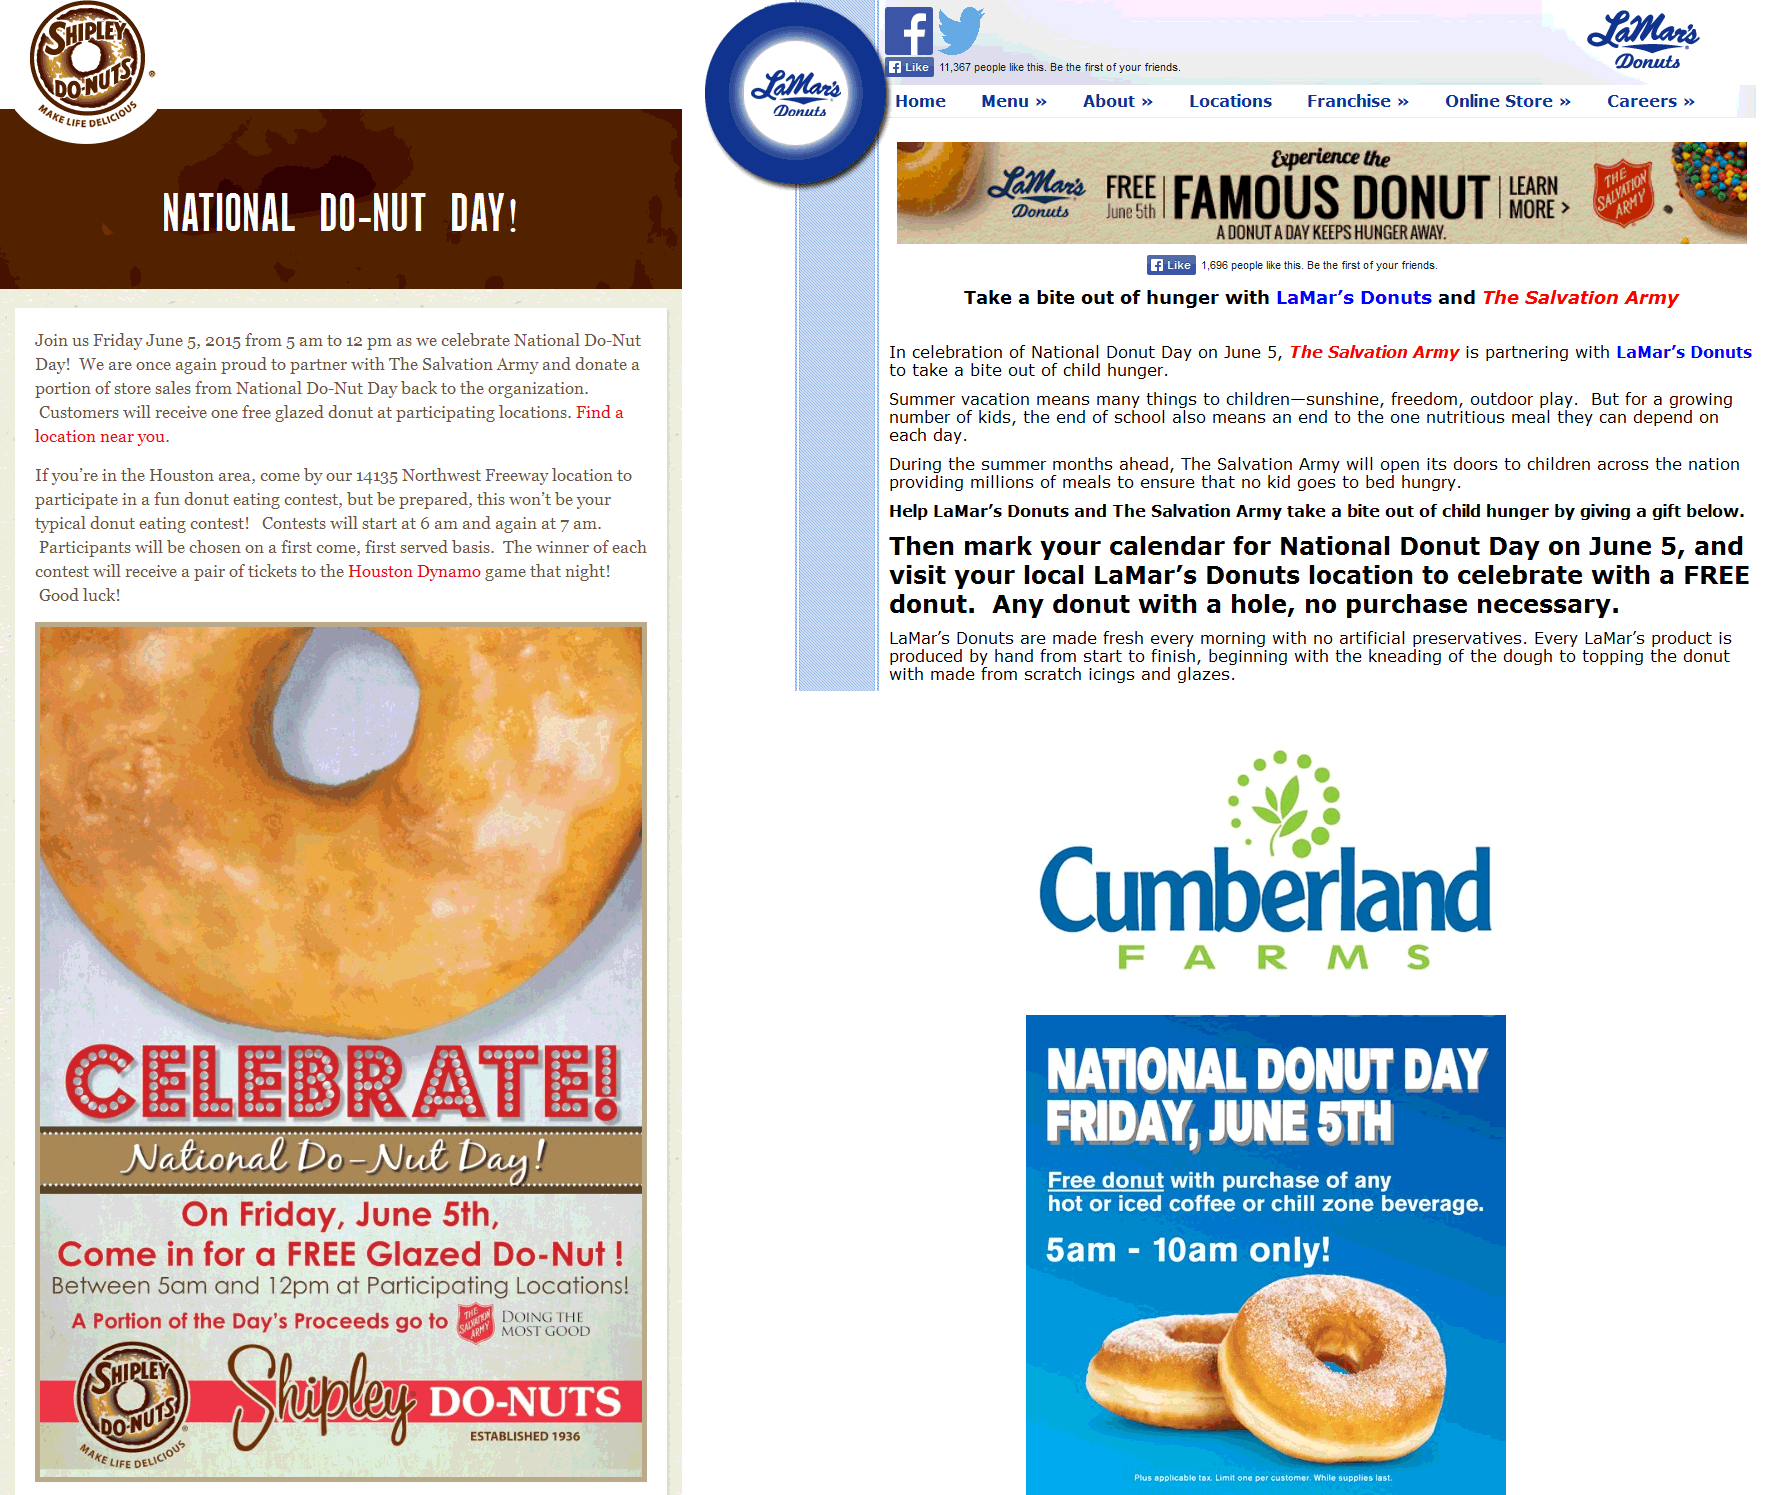 Shipley Do-Nuts Coupon February 2017 More free donuts today at Shipley Do-Nuts, LaMars Donuts & Cumberland Farms